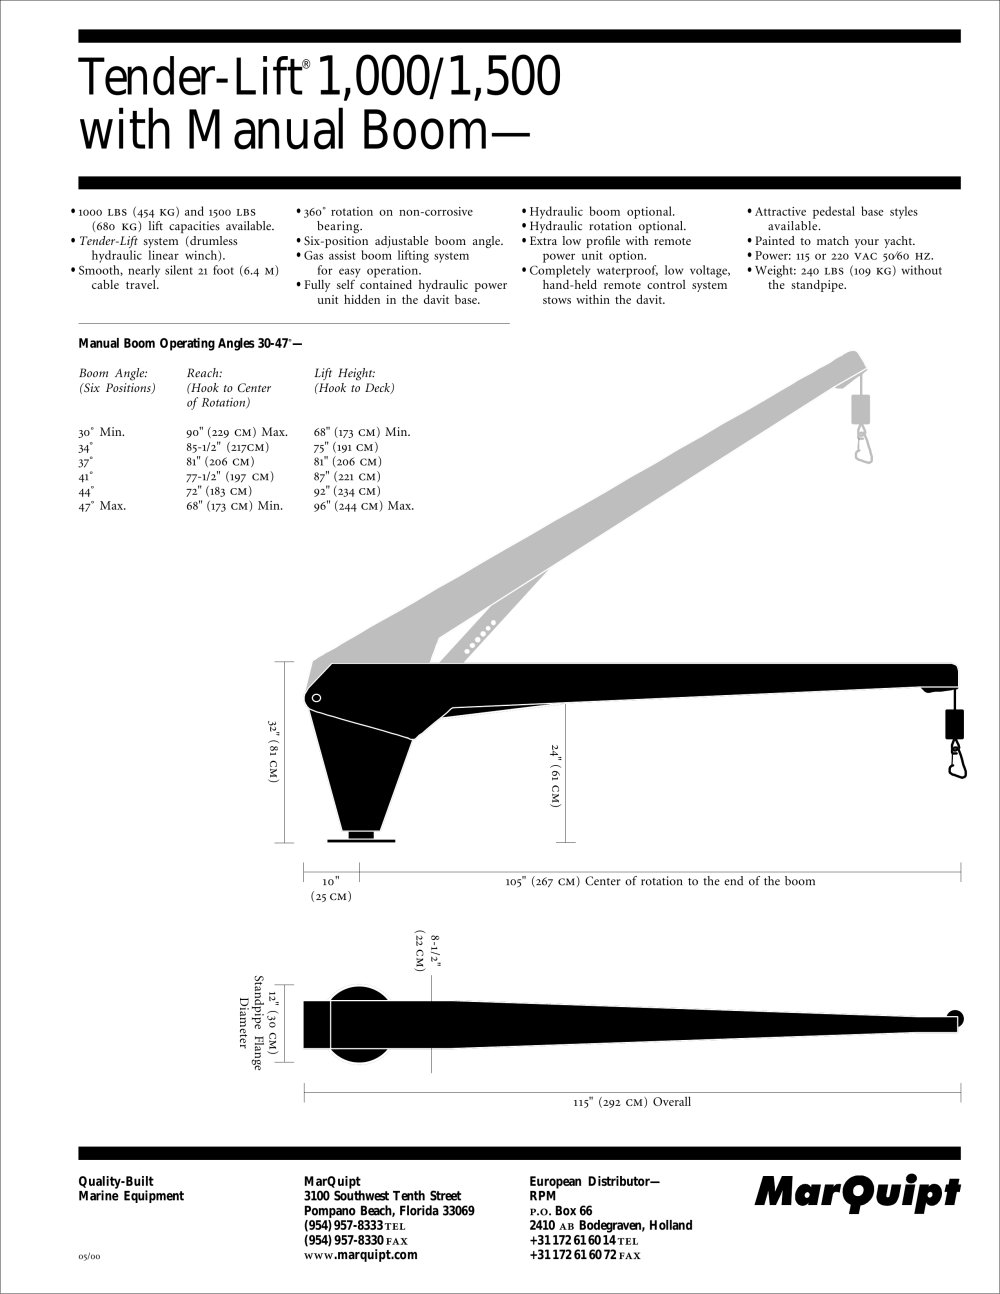 Tender Lift 1000 1500 With Manual Boom Mar Quipt Pdf Gas Schematic 1 Pages